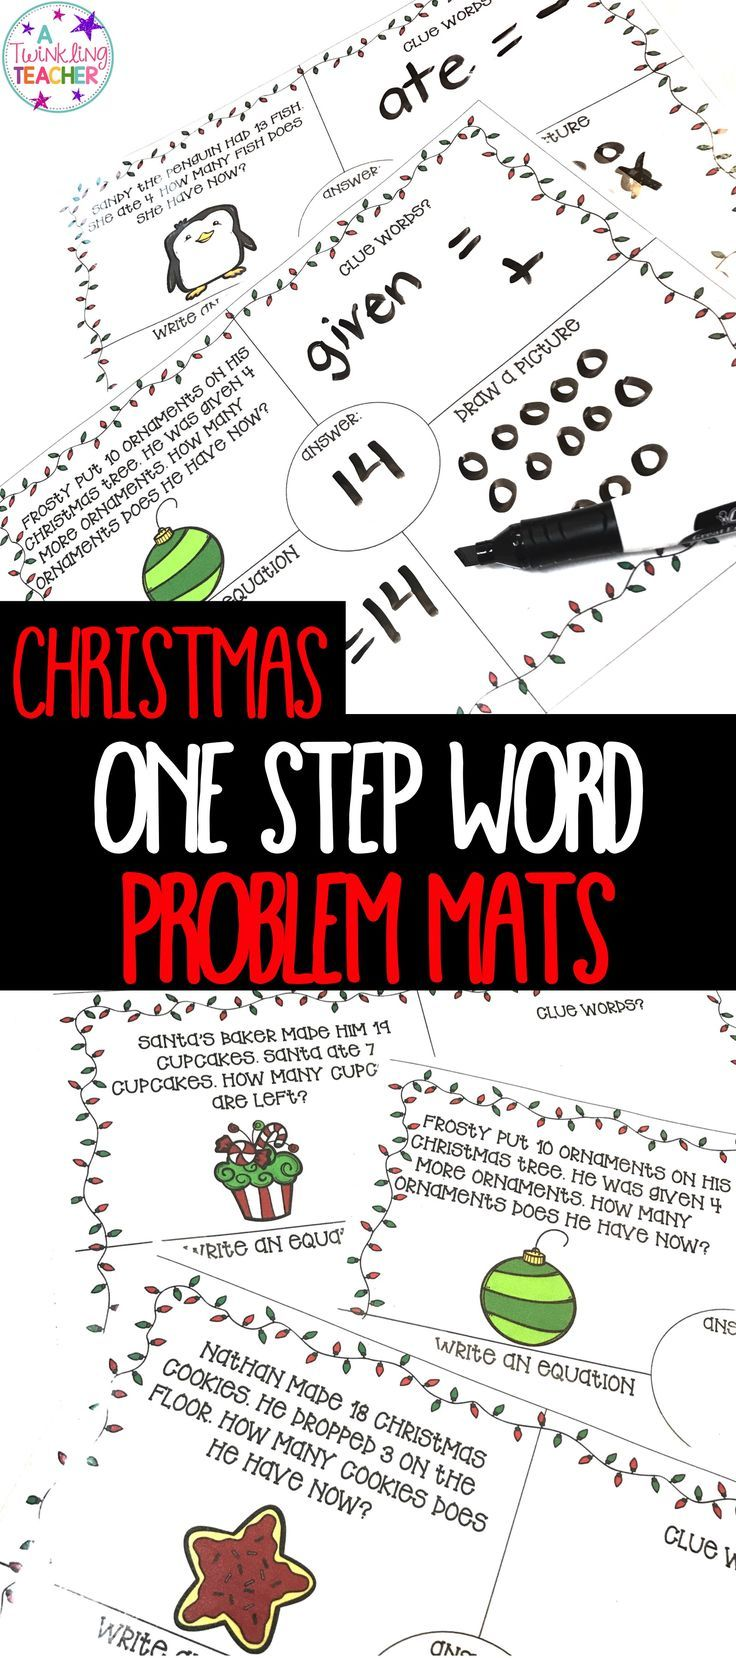 Christmas One Step Word Problems within 20 | Word problems ...